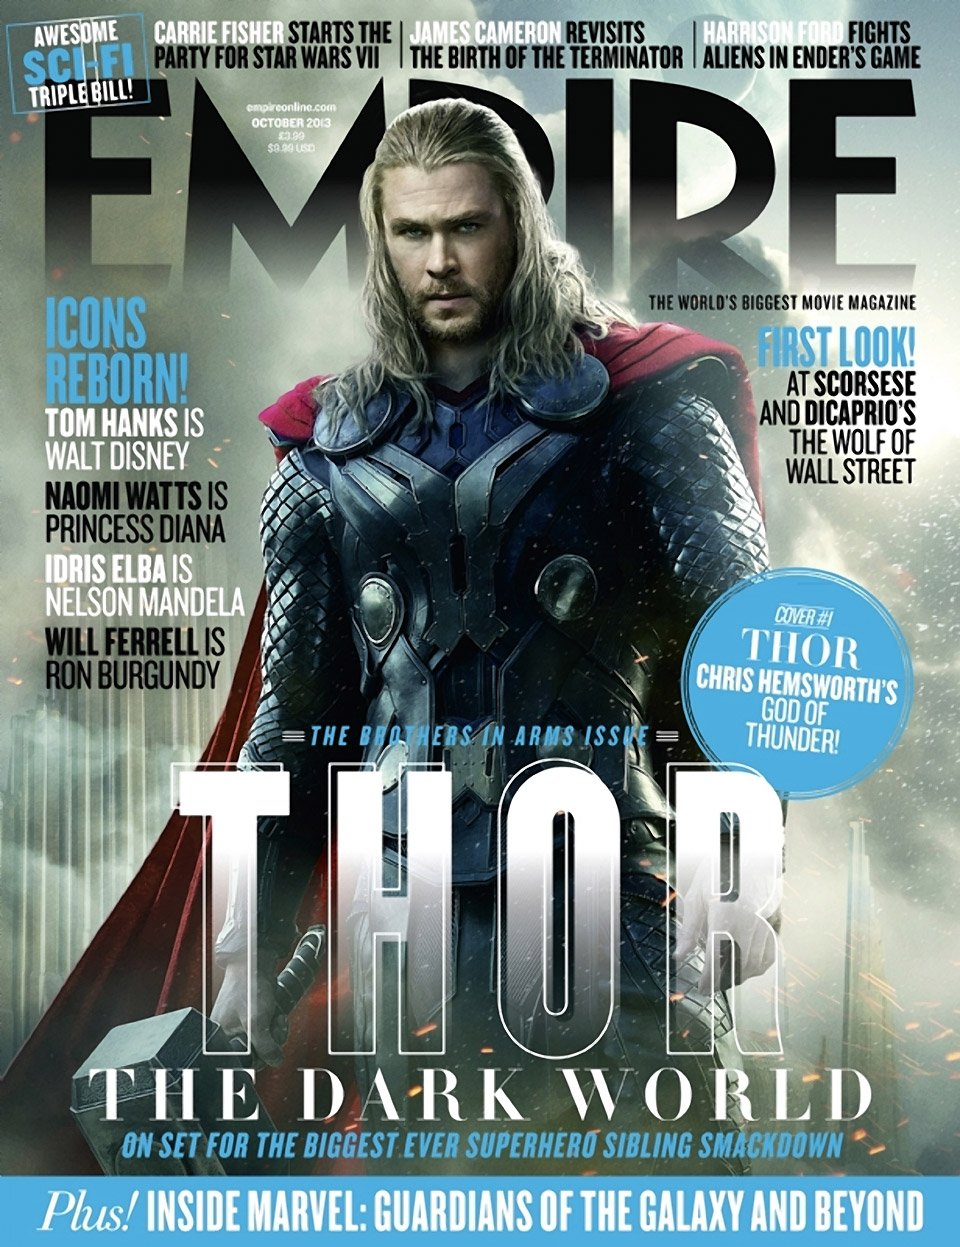 Thor: The Dark World Empire Magazine Covers